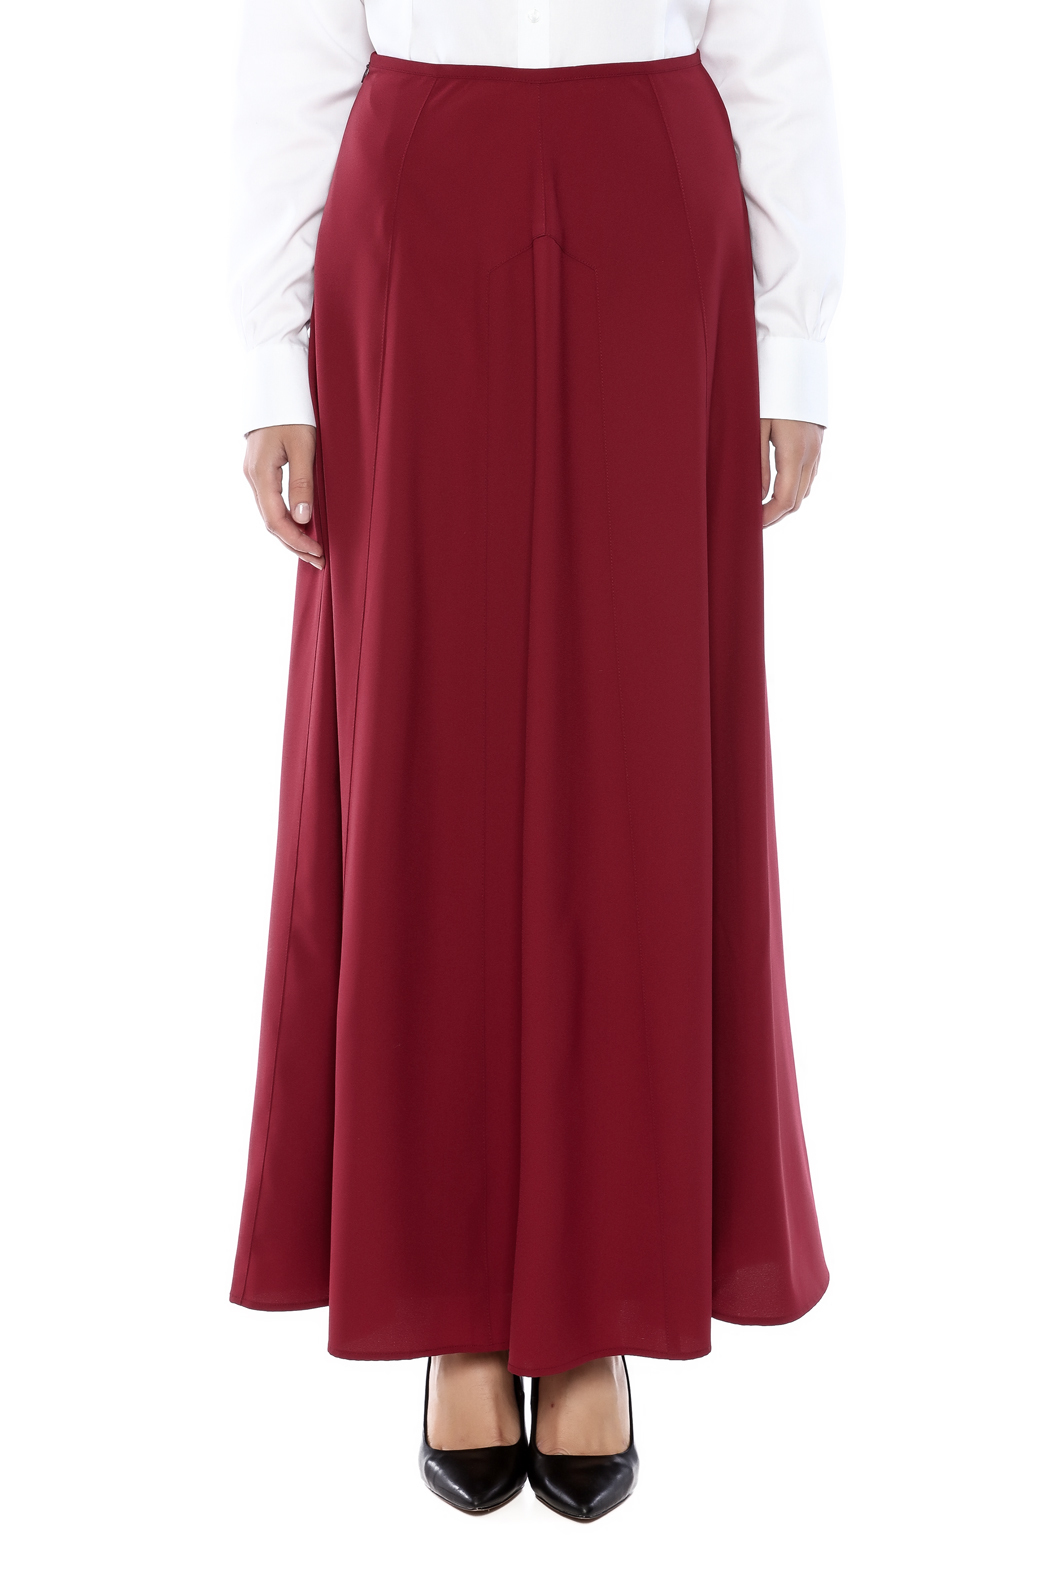 The Cue A Line Maxi Skirt from New Jersey by Pink Orchid — Shoptiques